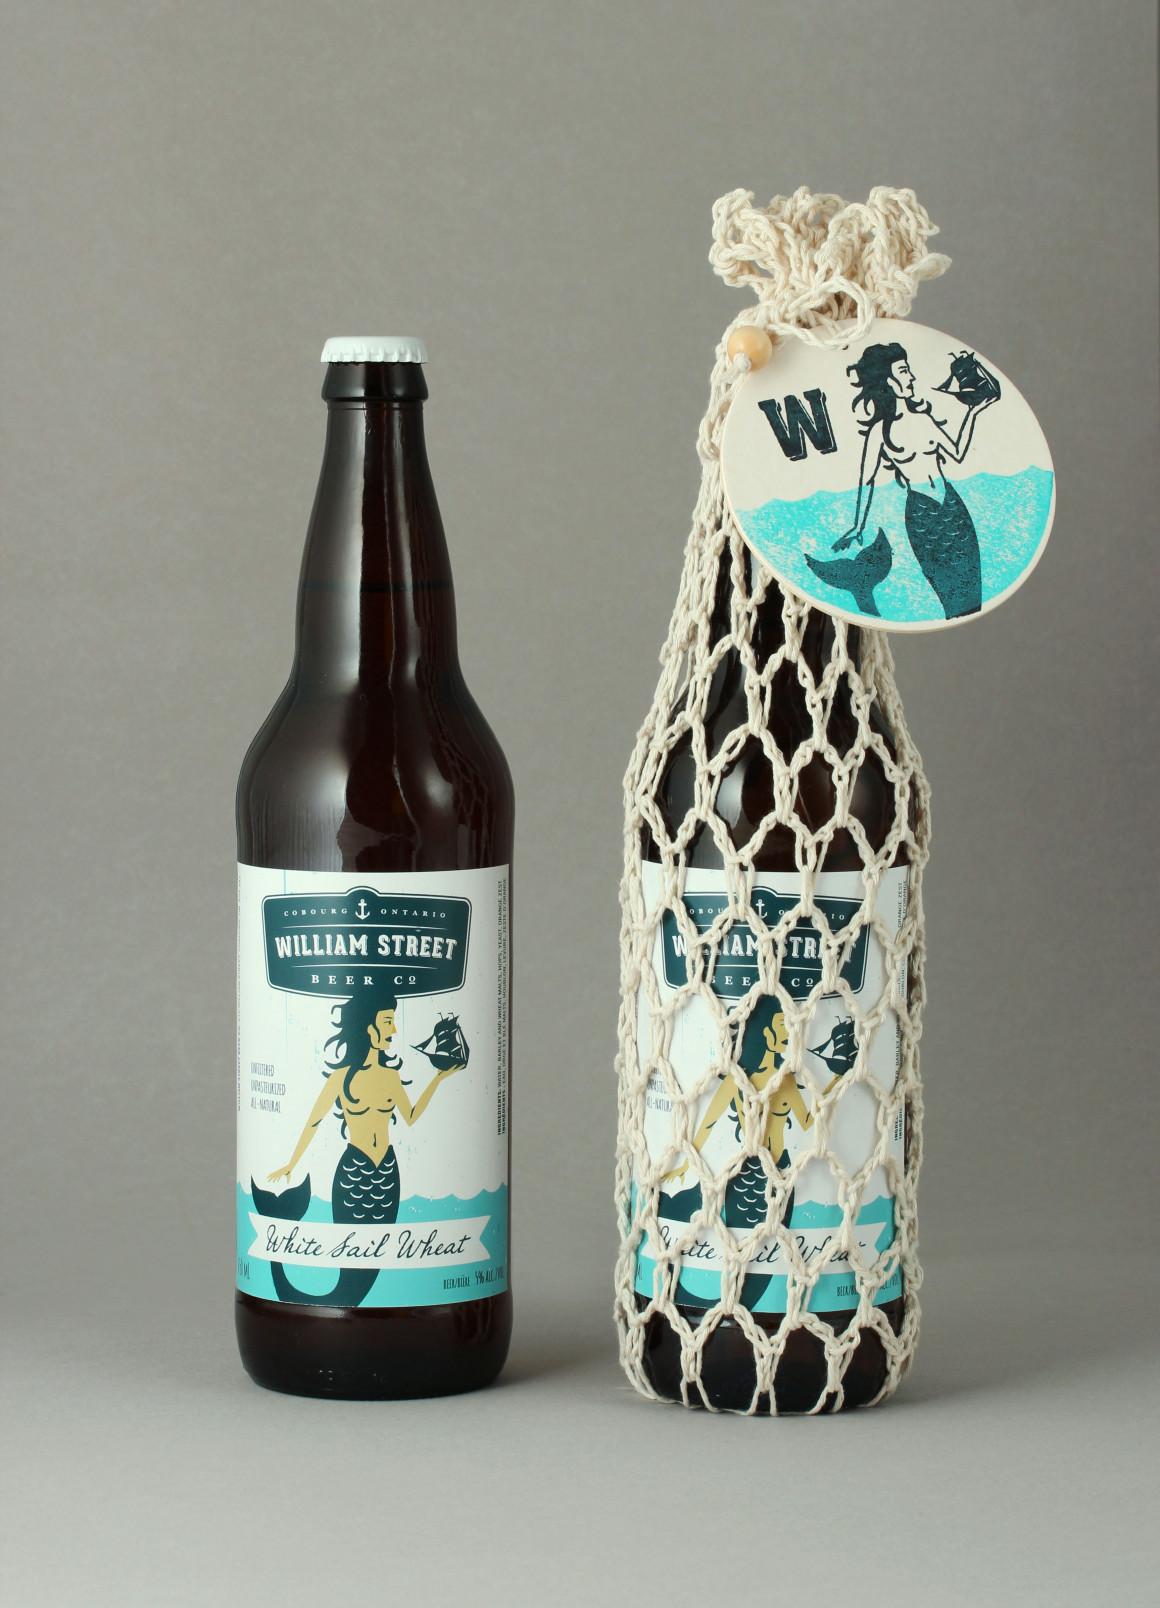 William Street Beer Co. package design – Luke Despatie and The Design Firm